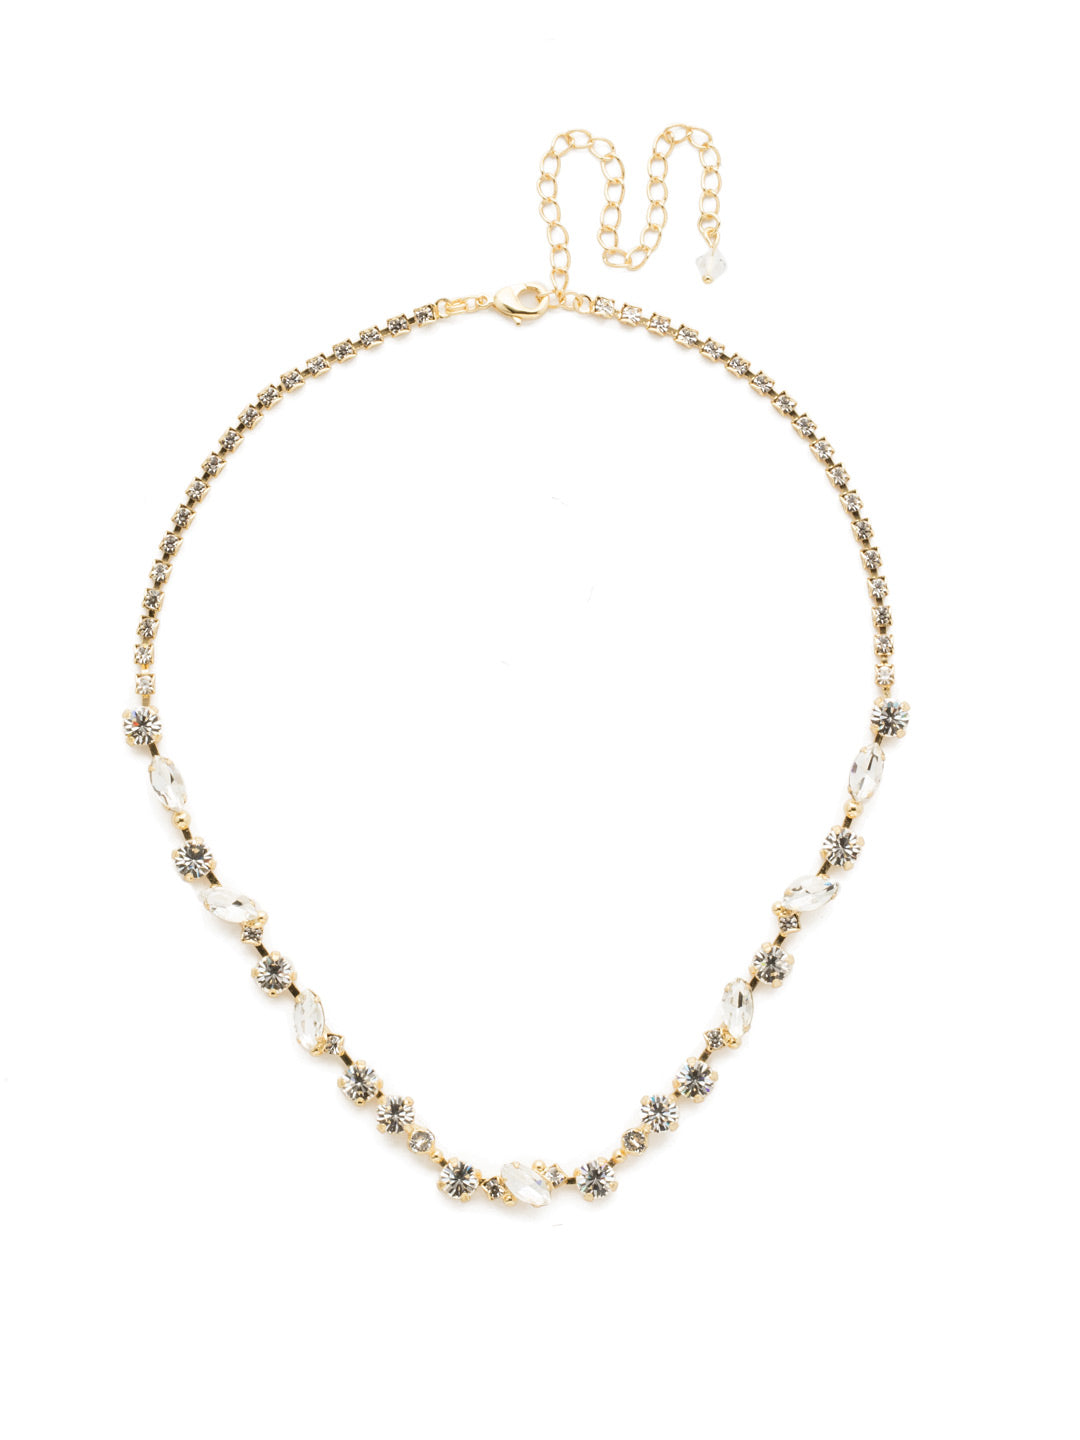 Simply Stated Tennis Necklace - NDN1BGCRY